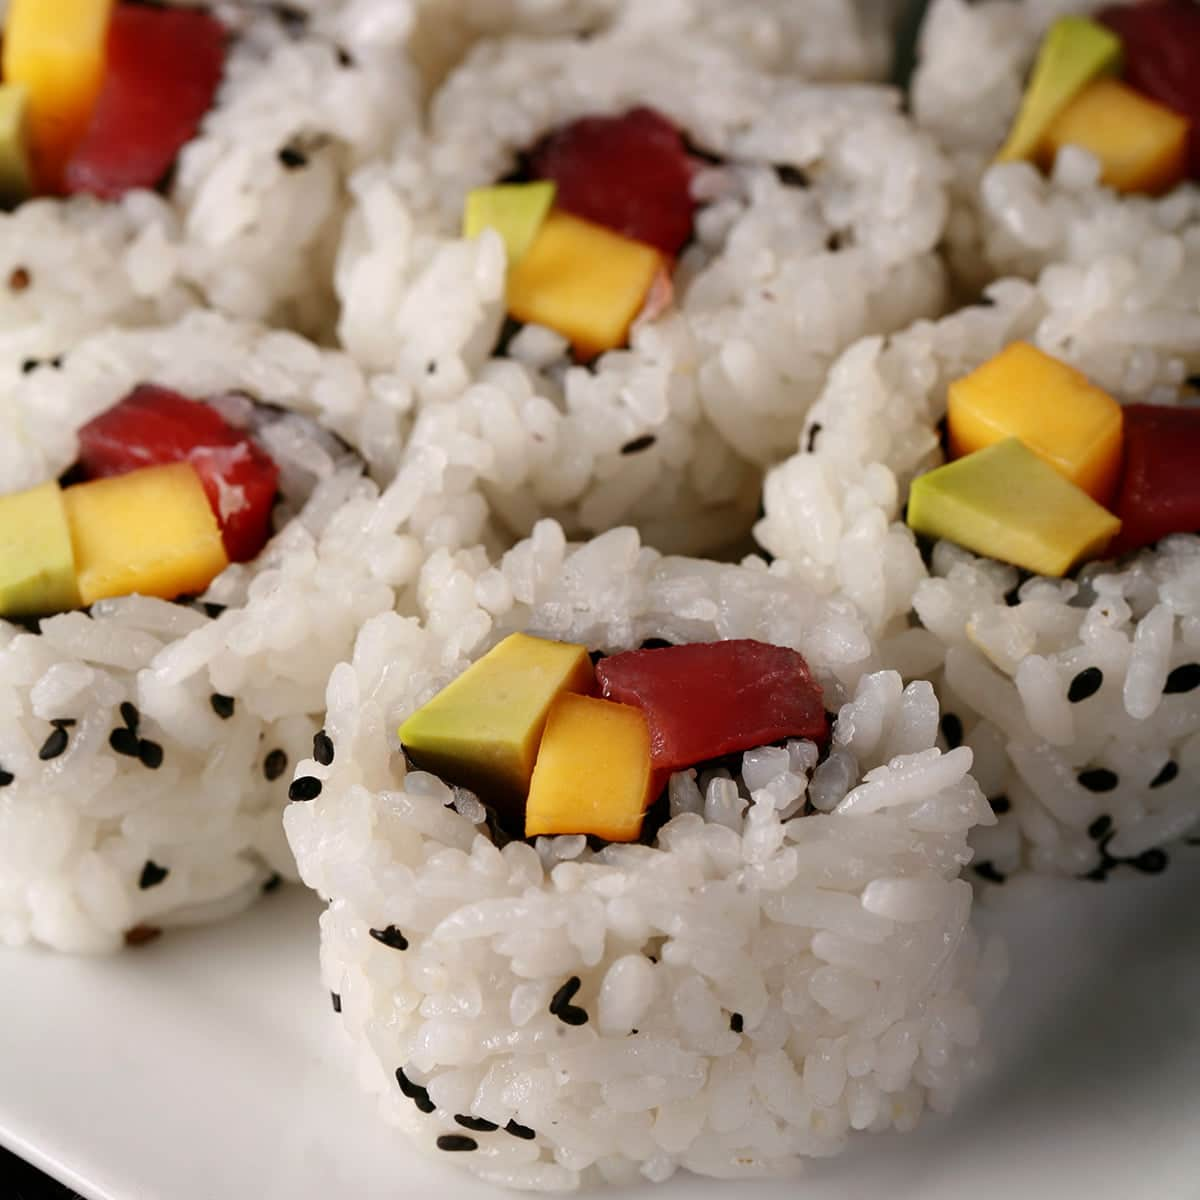 7 pieces of tuna avocado and mango sushi roll slices, on a small white plate.